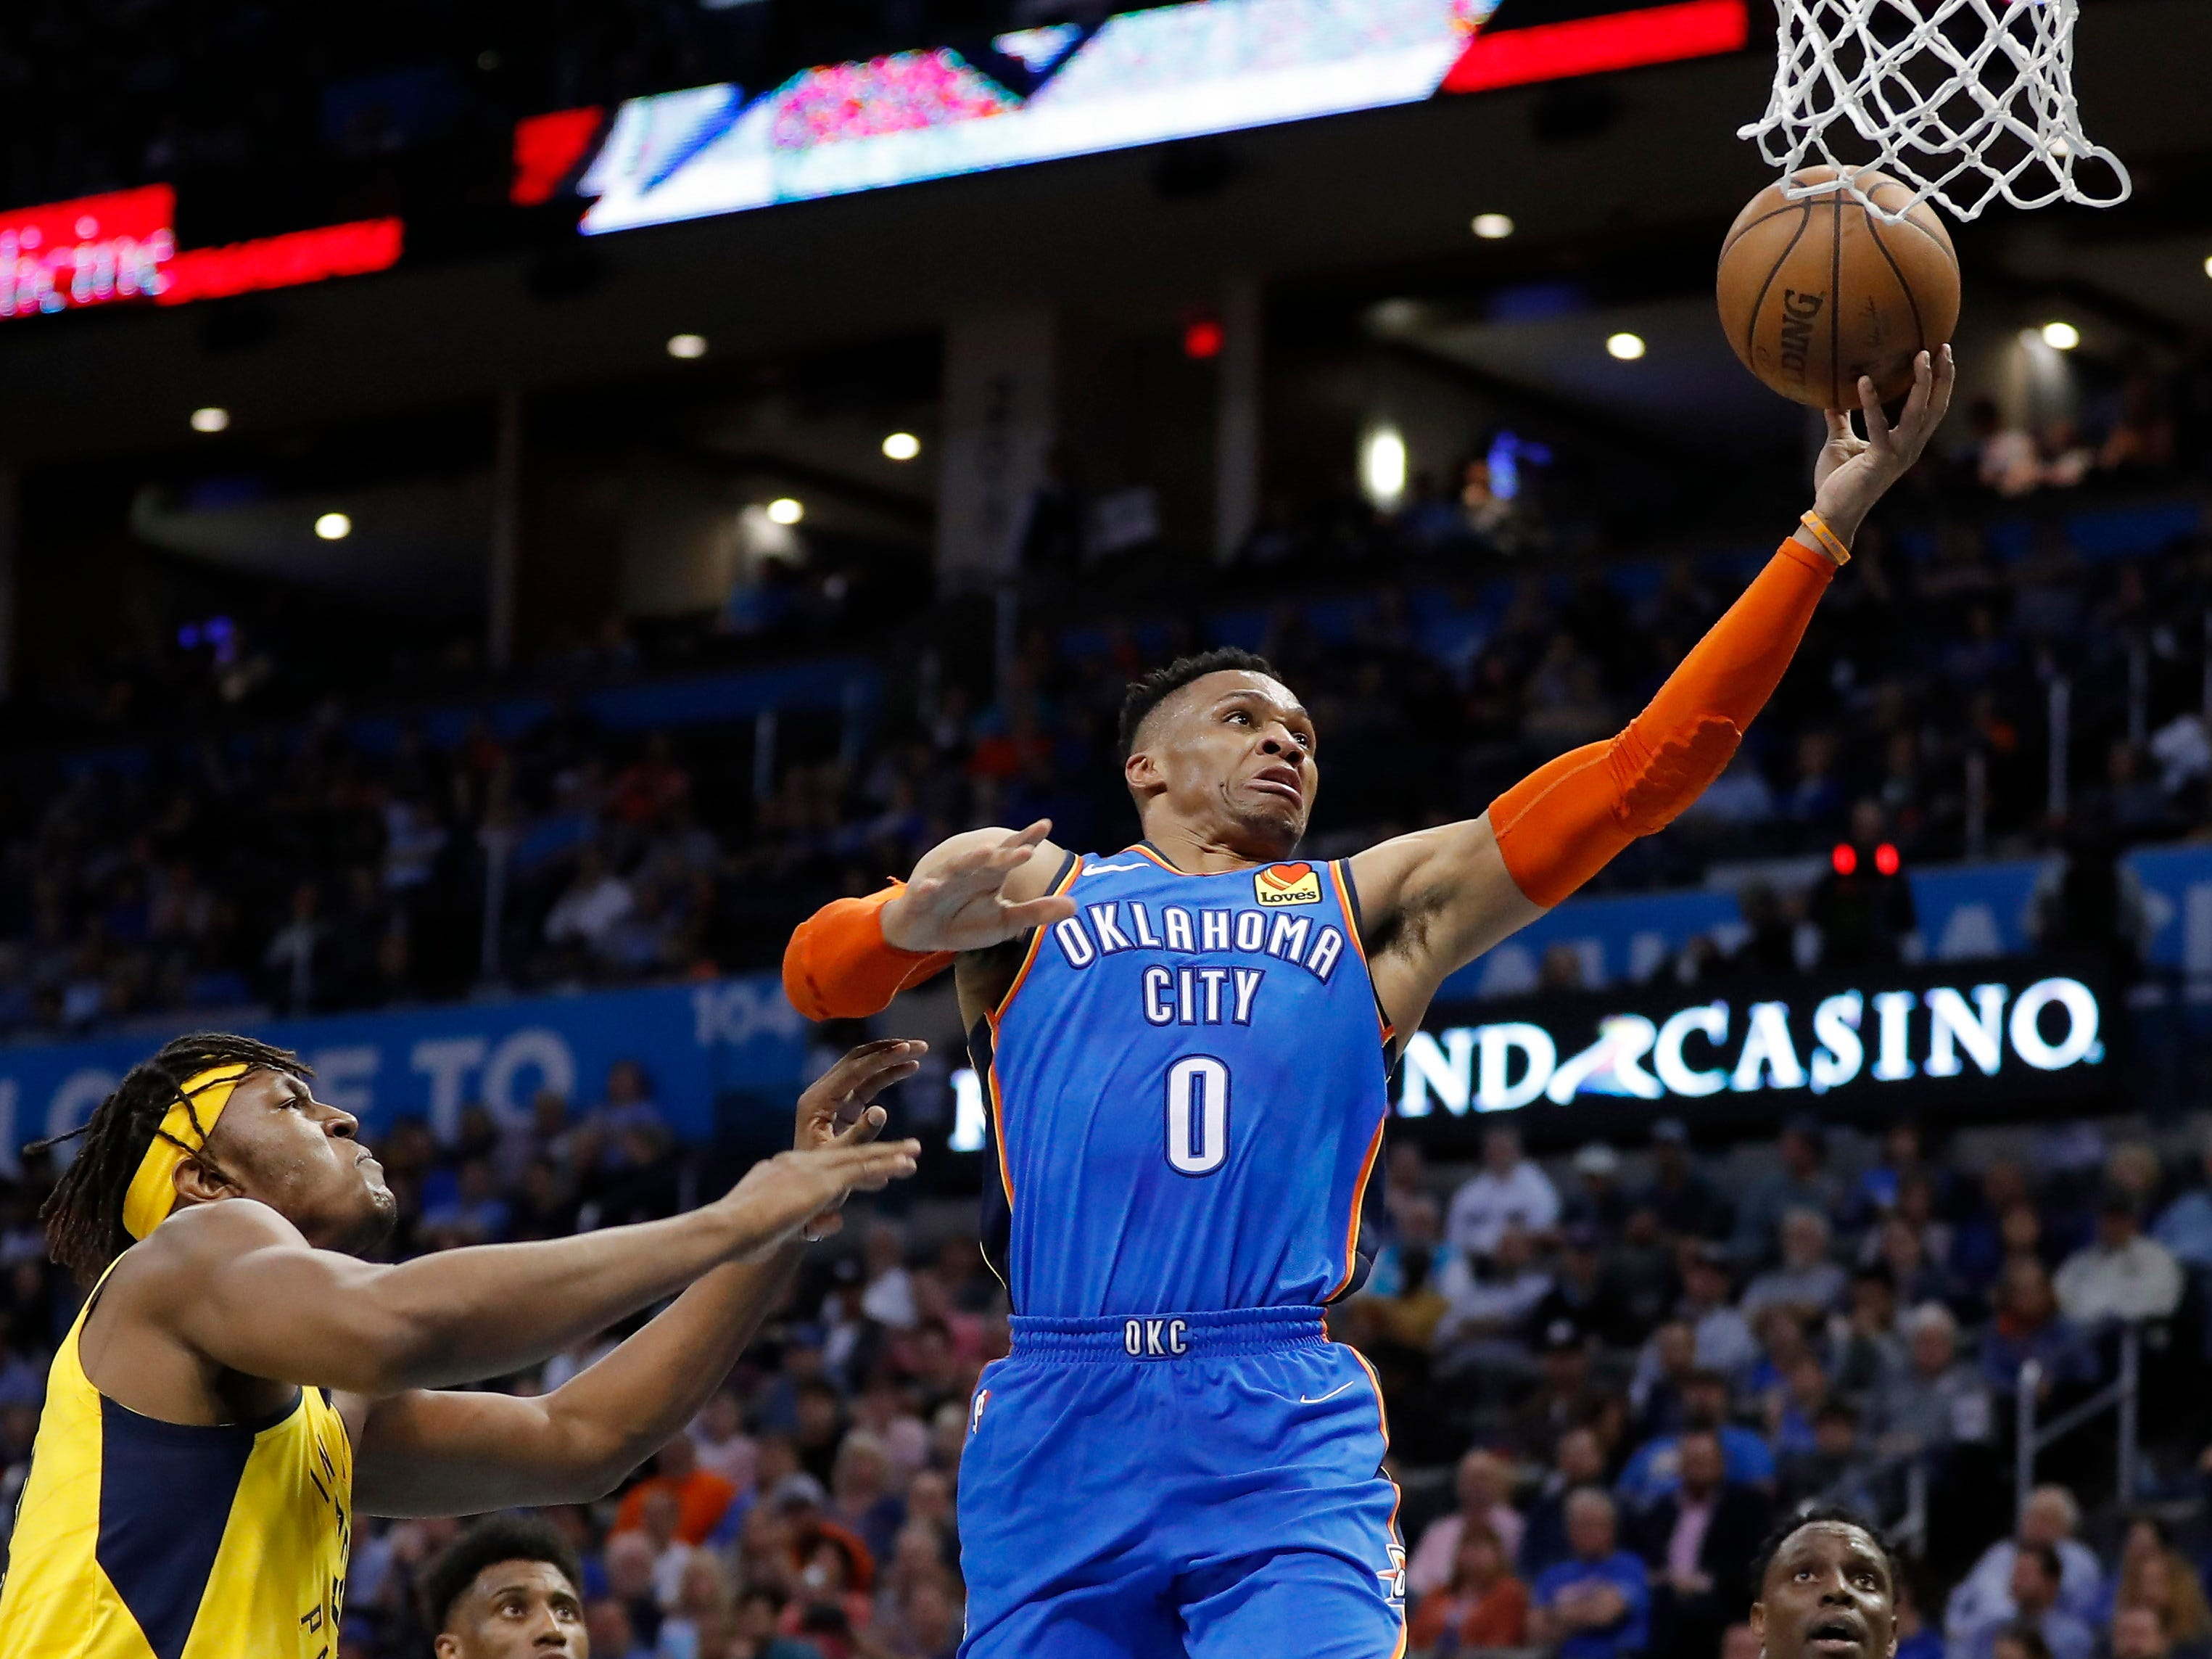 110. Russell Westbrook, Thunder (March 27): 17 points, 11 rebounds, 12 assists in 107-99 win over Pacers (29th of season).